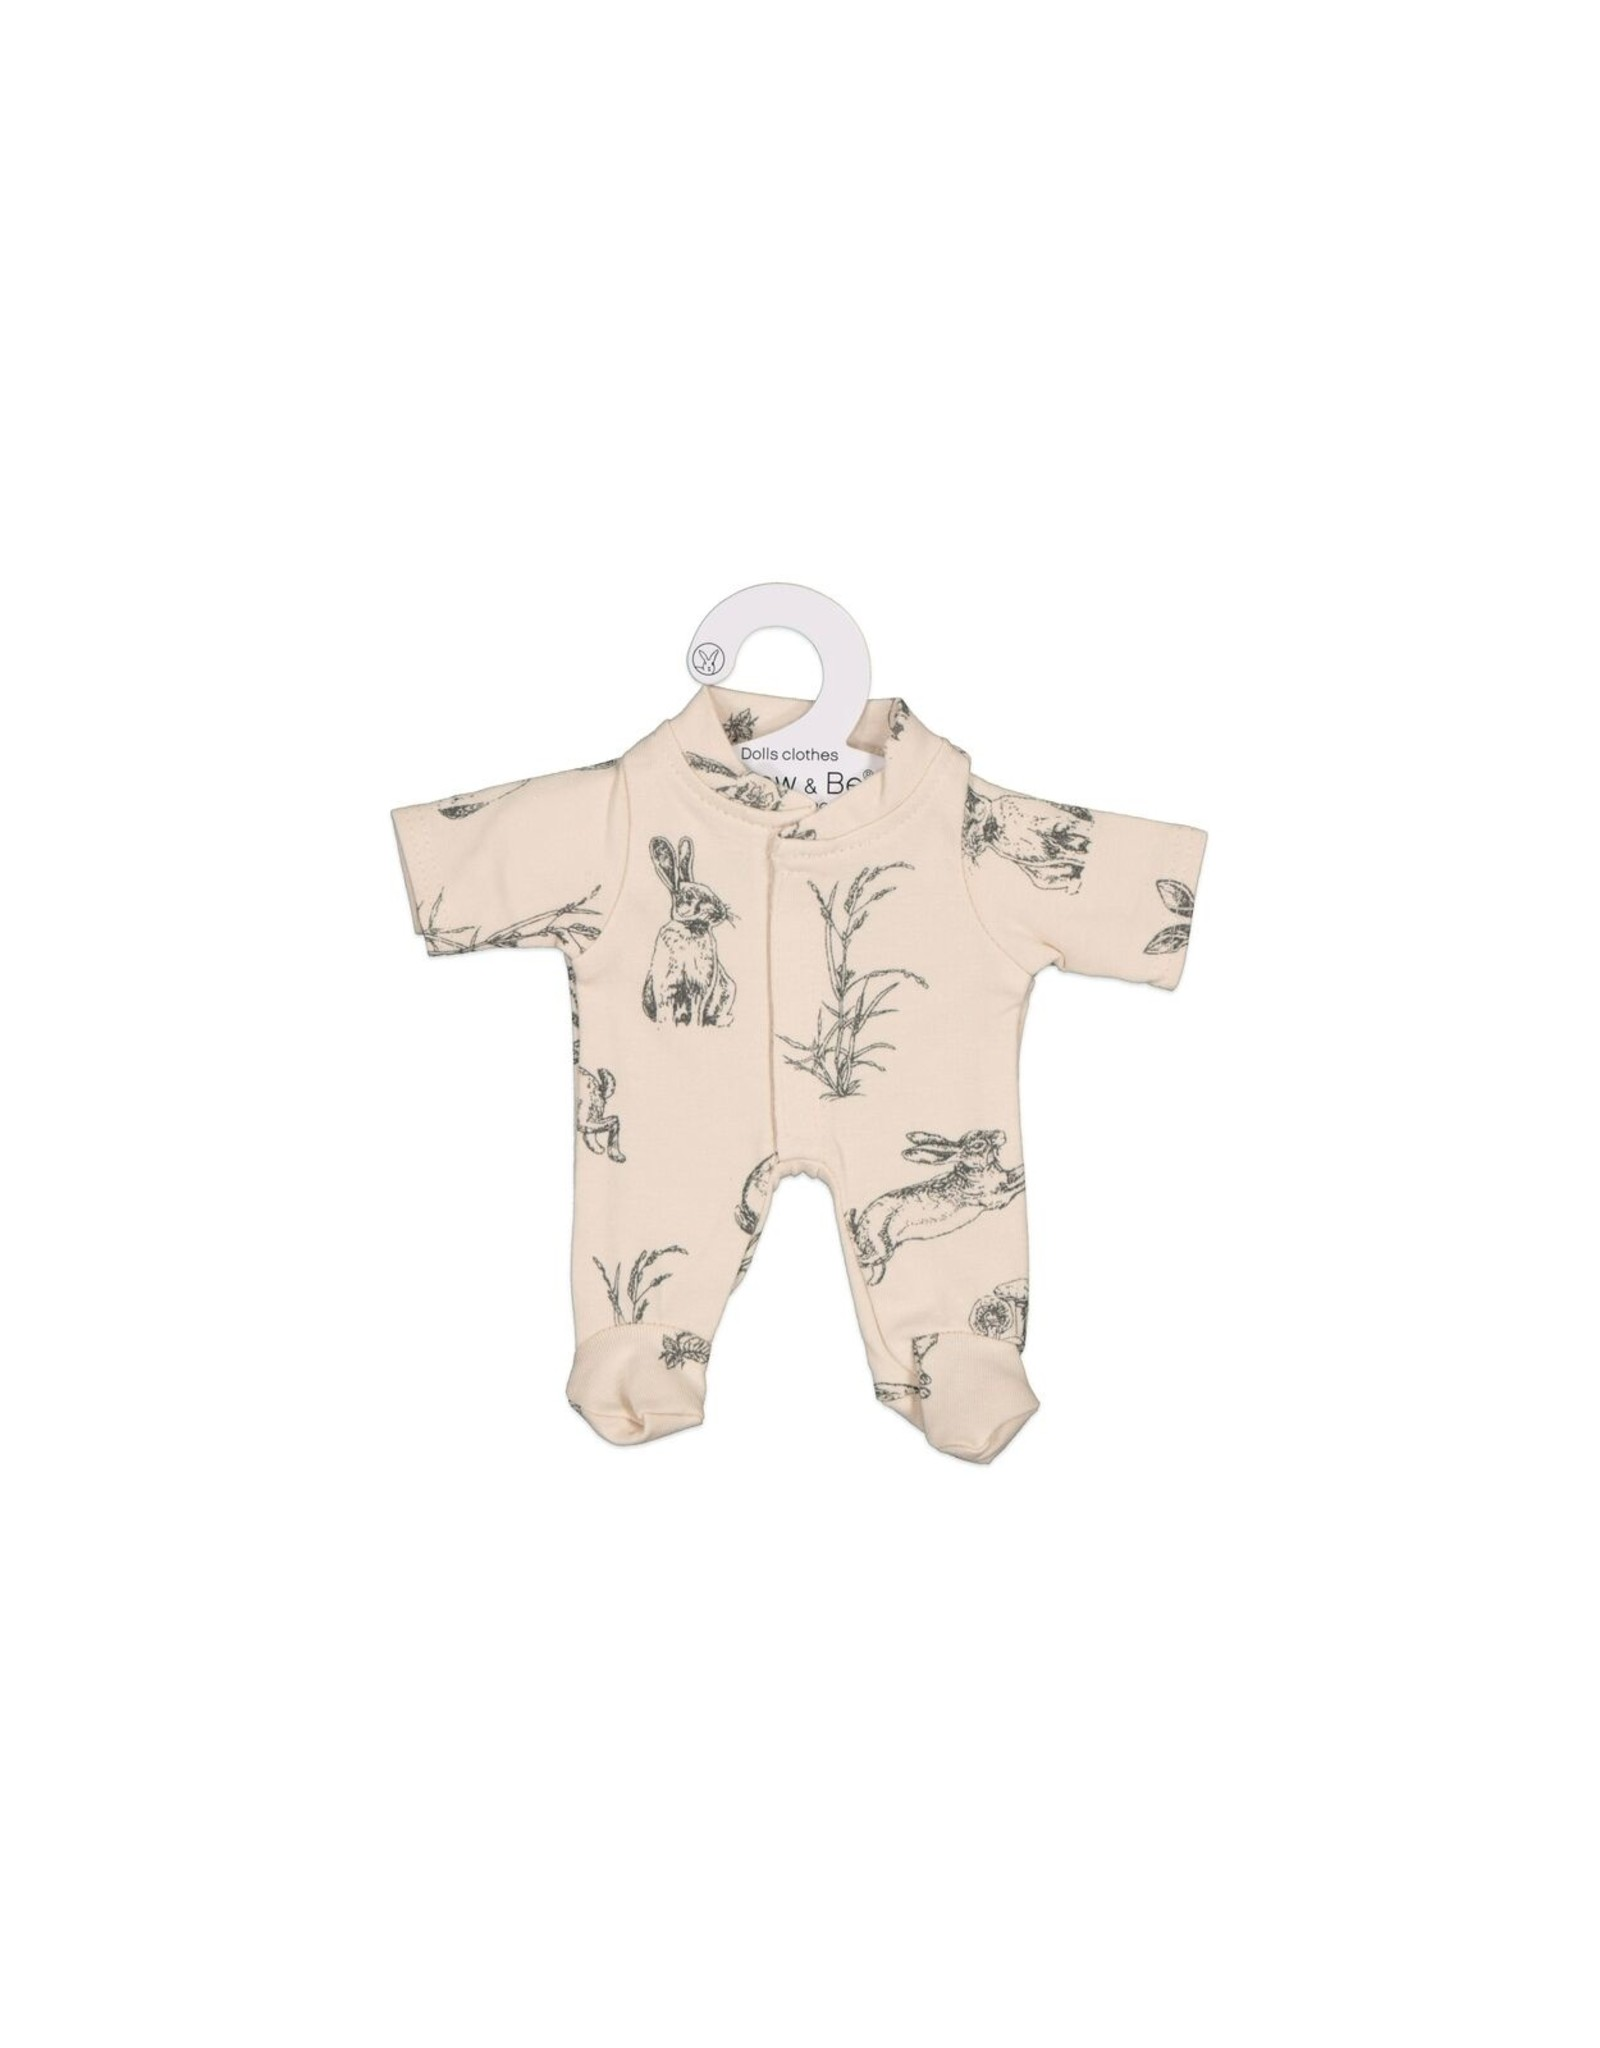 Burrow & Be Burrow & Be - Almond Burrowers Doll Jumpsuit 21cm